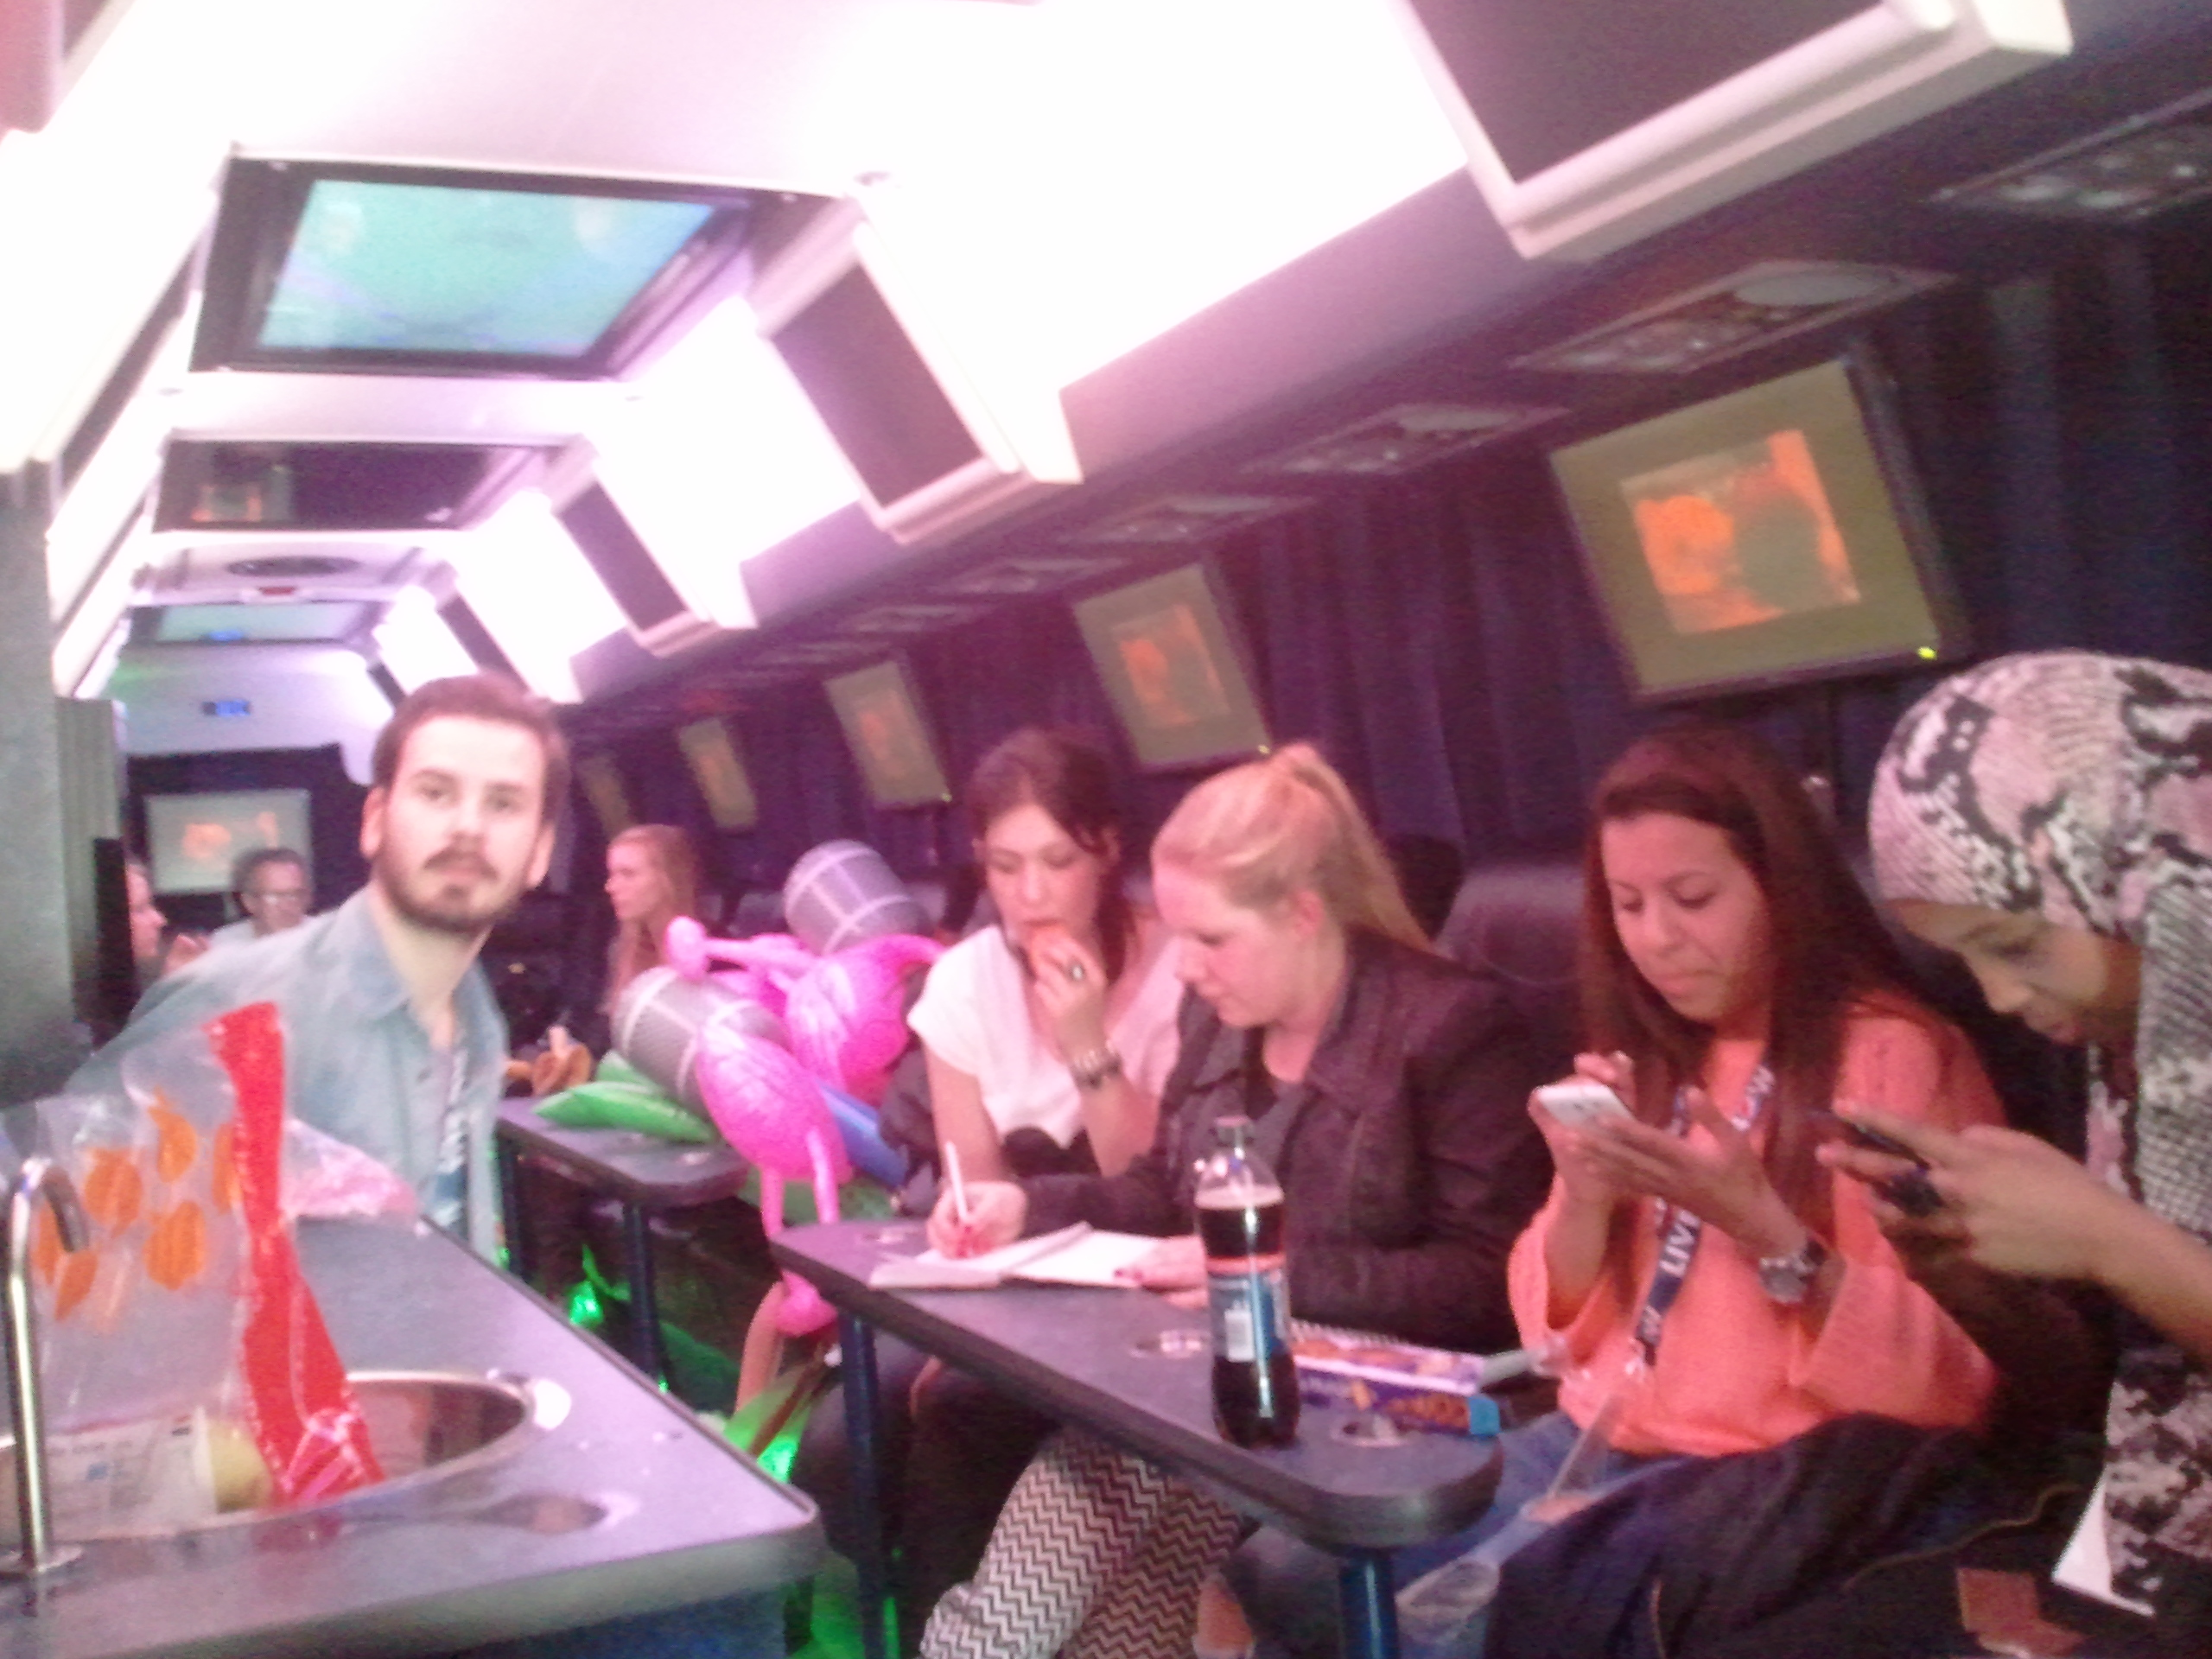 Inside The Bus With The Other Winners